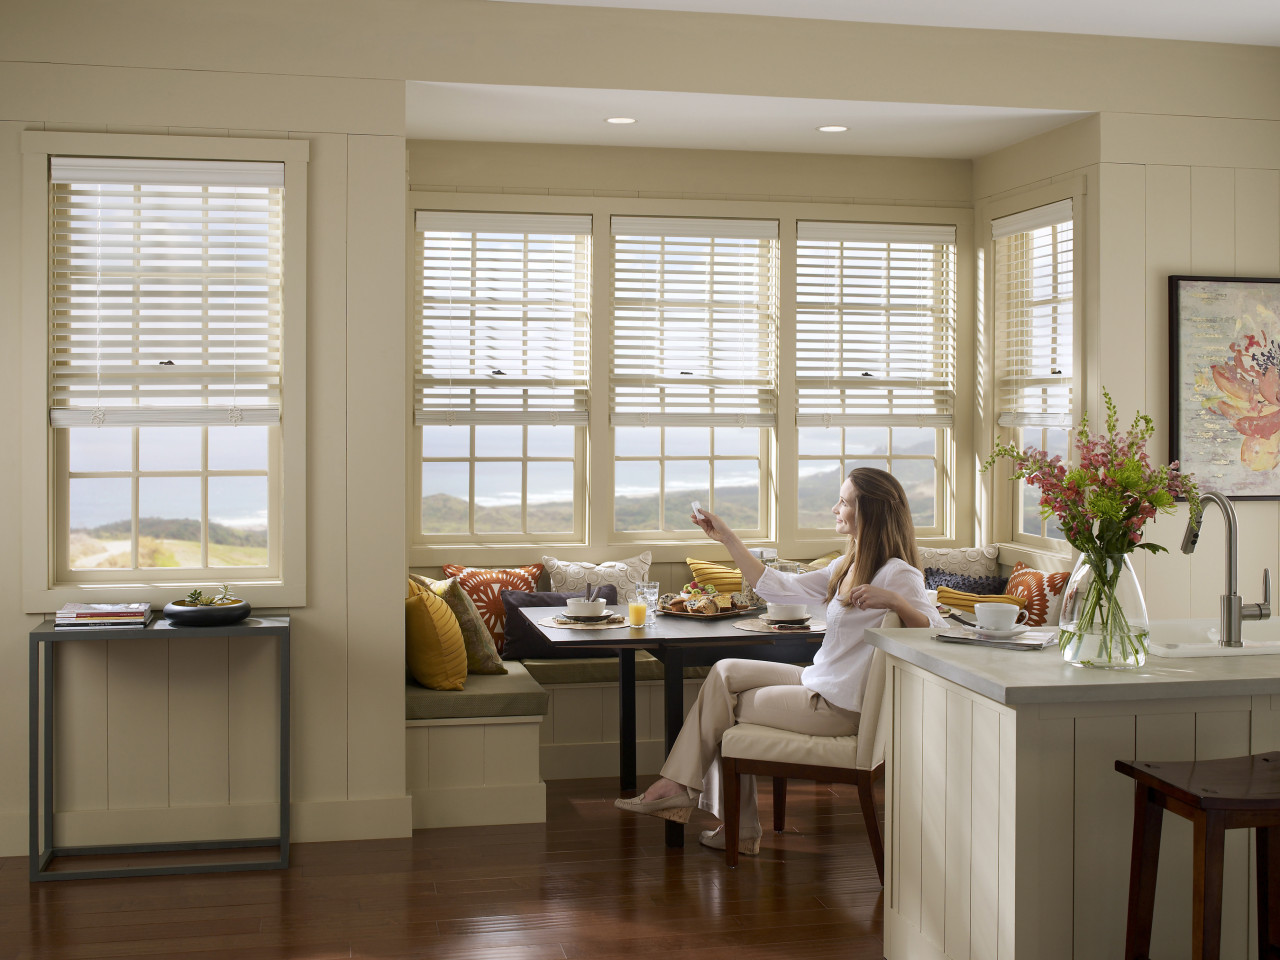 Motorized Window Blinds in Kitchen